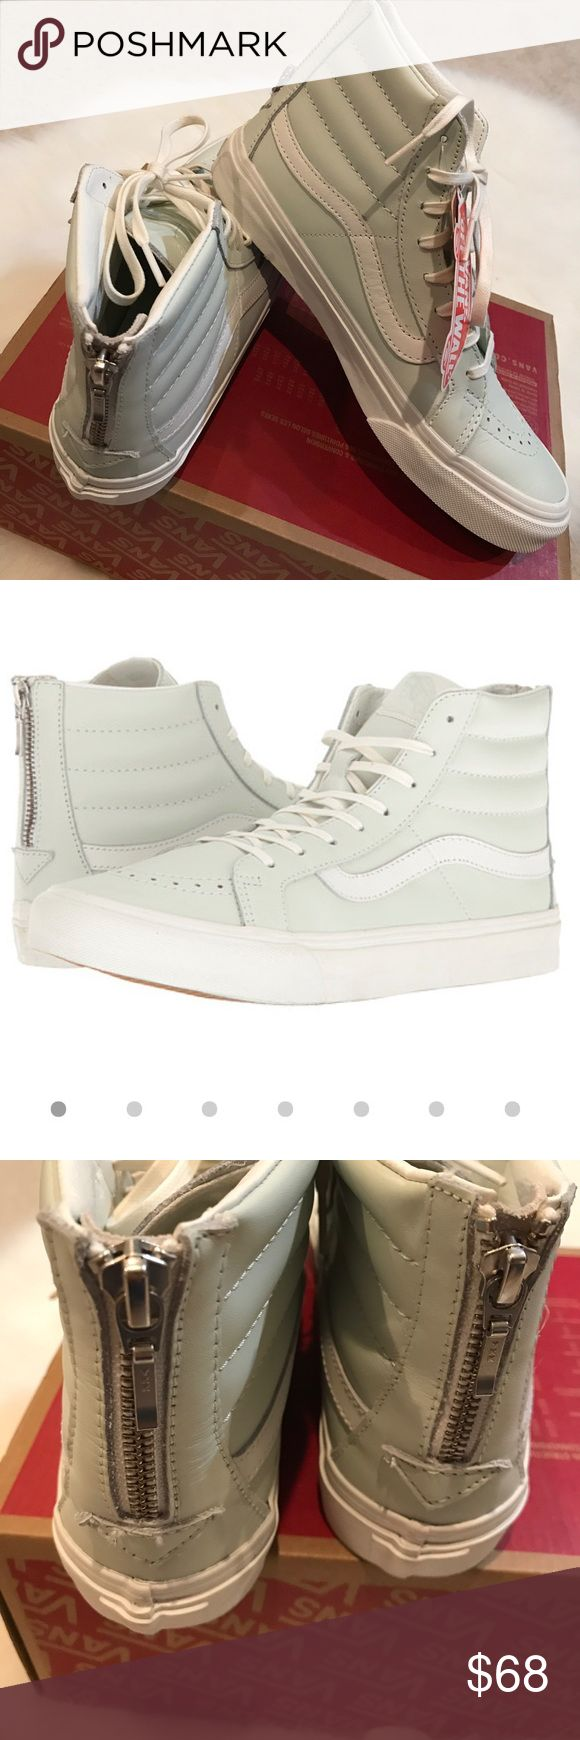 NWT Vans SK8-Hi leather mint zip up sneakers Super chic NWT Vans SK8-Hi leather upper mint colored sneakers with zip up on back. Size 7.5 women. White leather trim along the sides.  Perfect with skinny jeans or skater dress! No Trades. 700+ items sold with perfect 5 star rating! Vans Shoes Sneakers